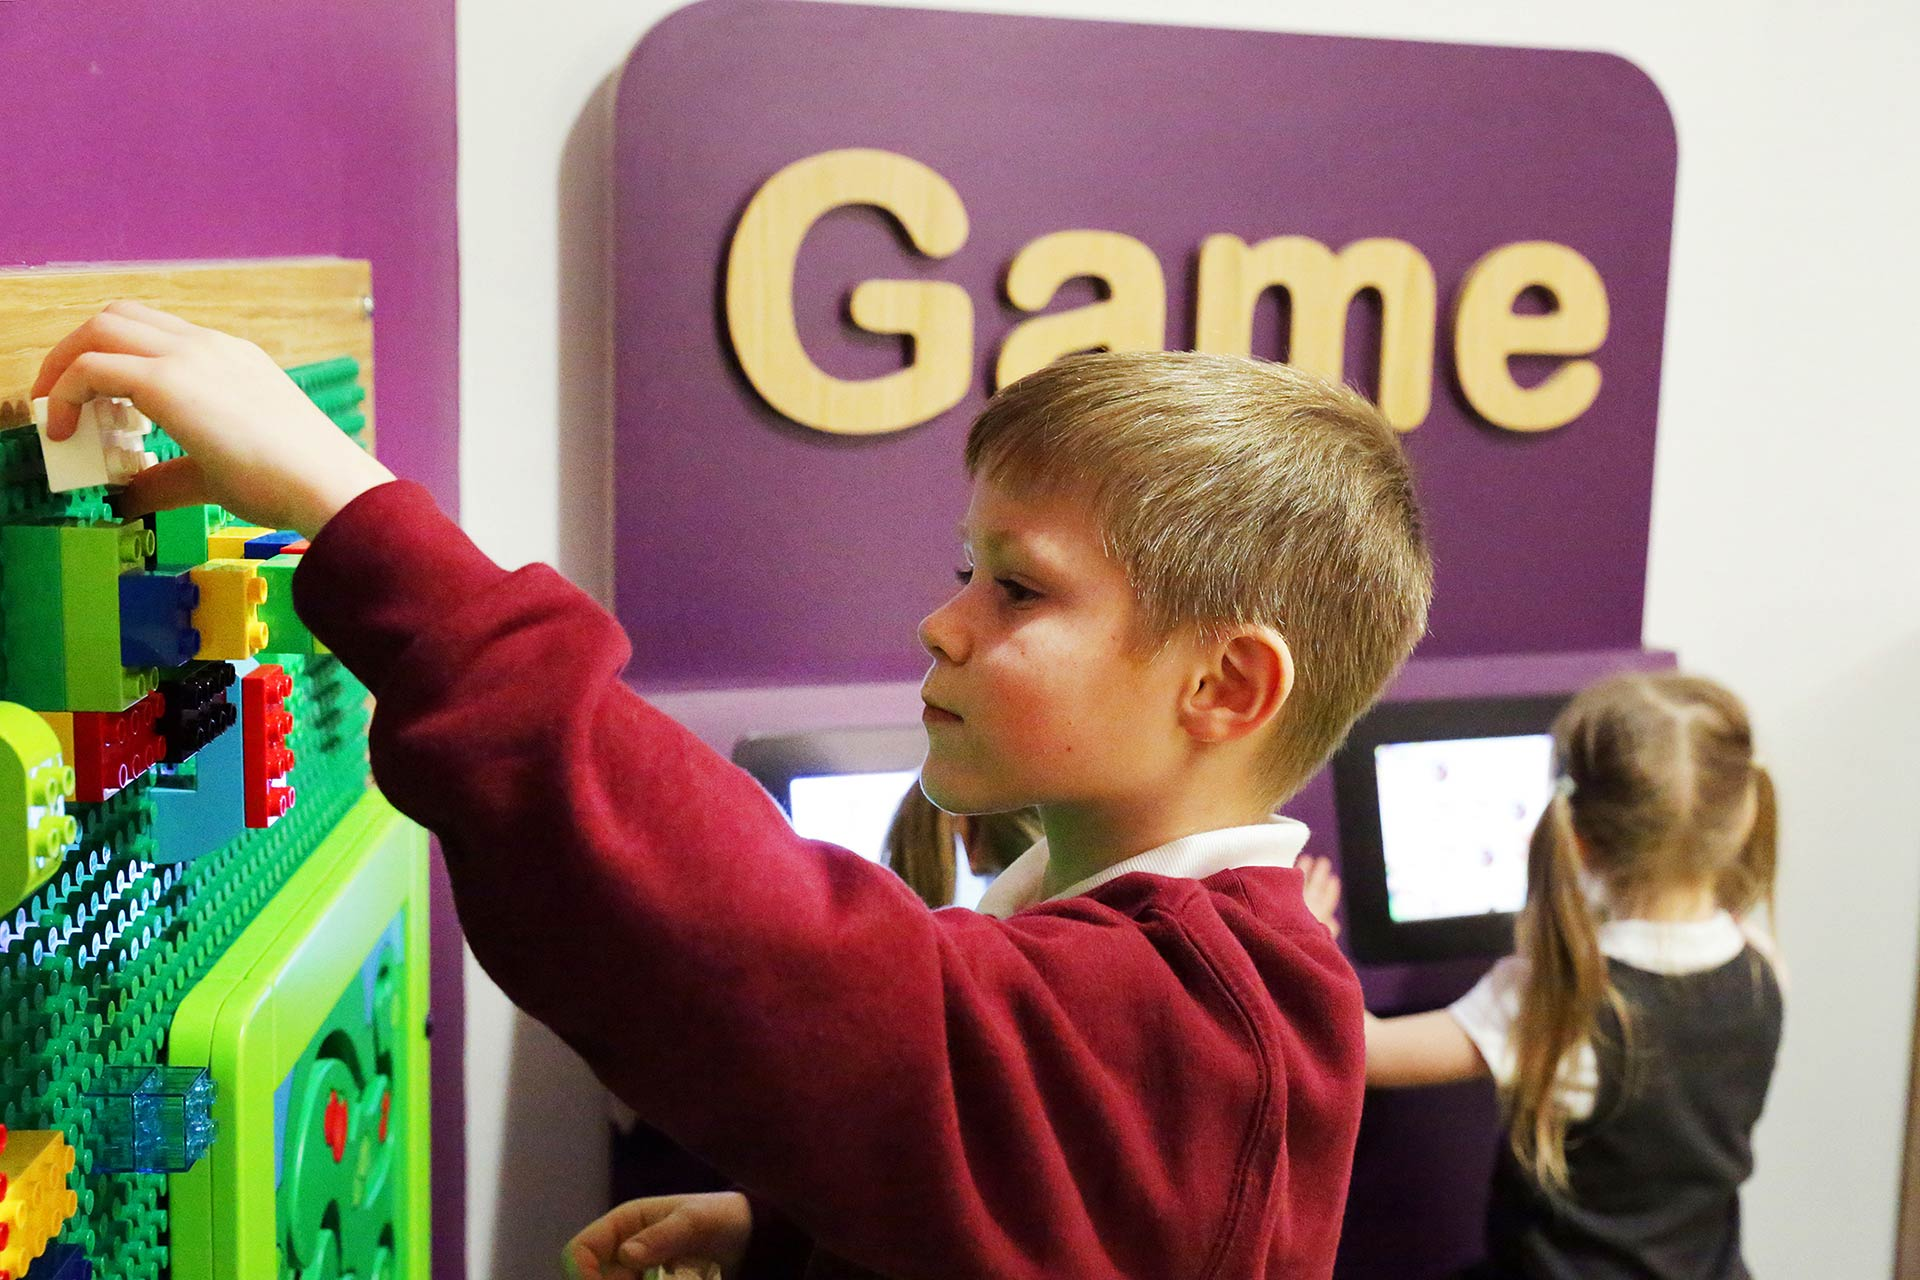 Children playing with interactives at A&E waiting room